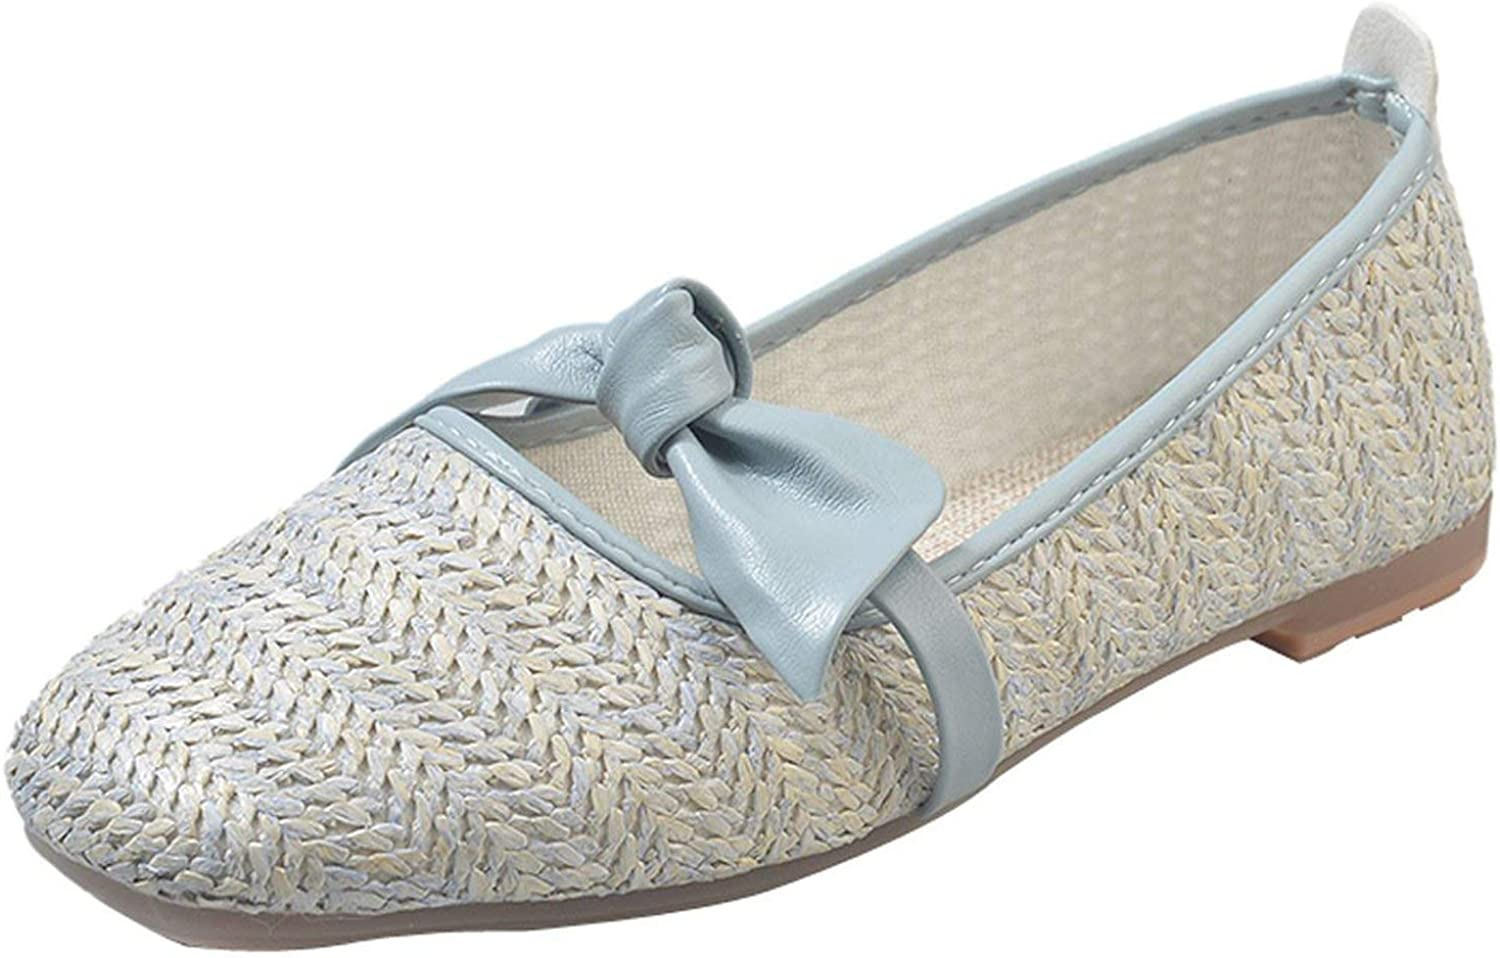 Loafers shoes Rattan Grass Square Toe Platform Casual shoes Single Flat Casual shoes,bluee,36,C